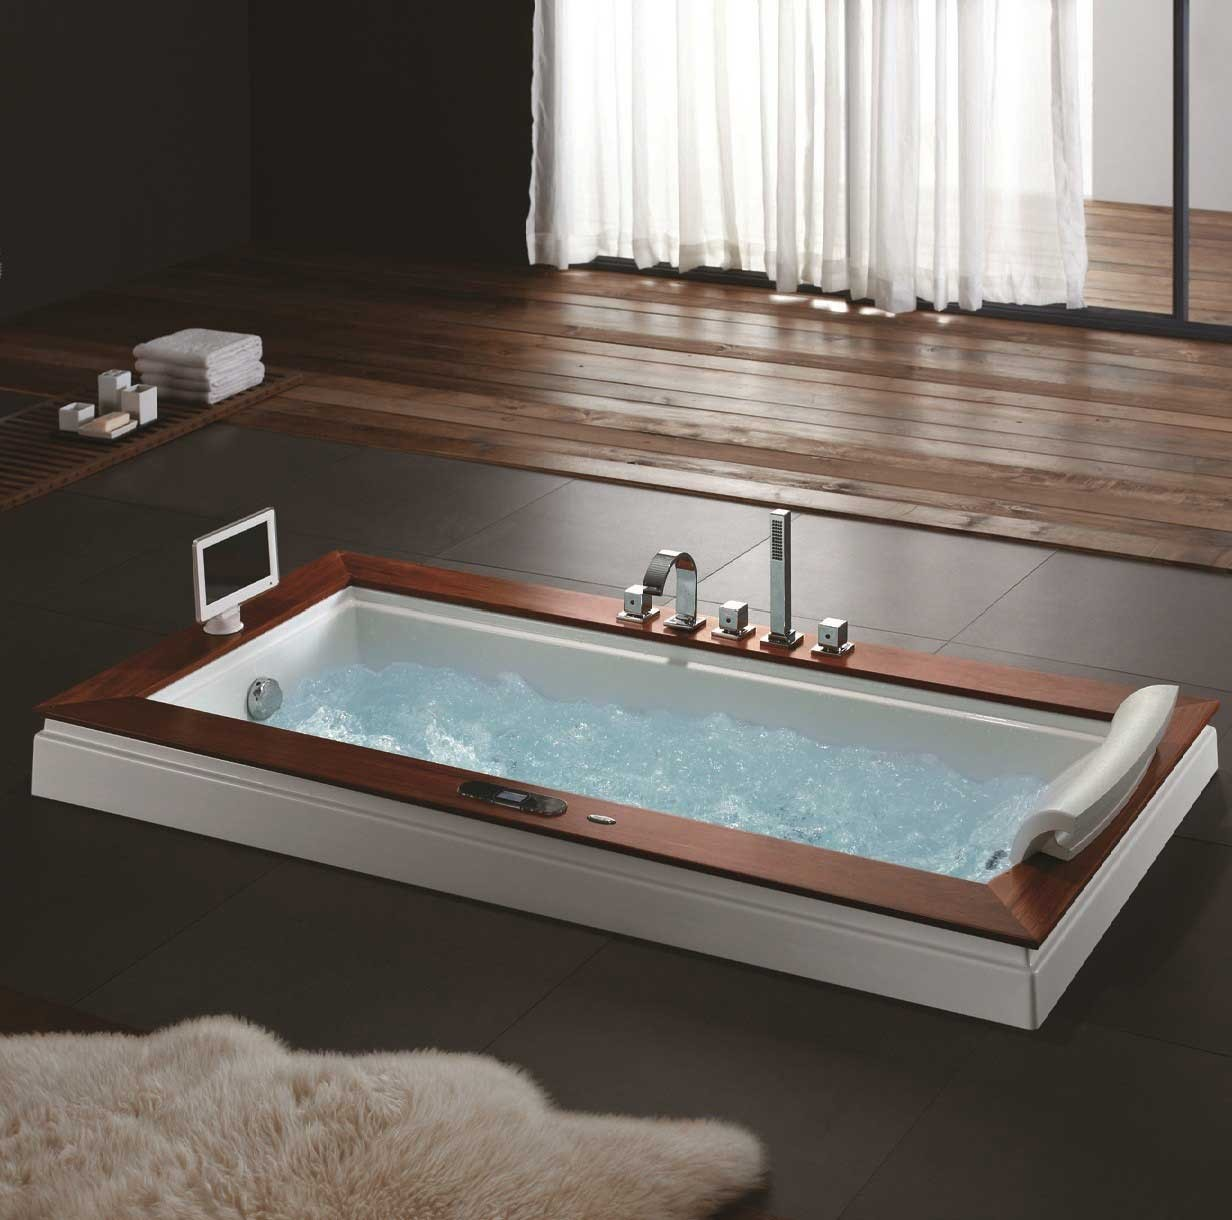 Charmant Madison Luxury Whirlpool Tub